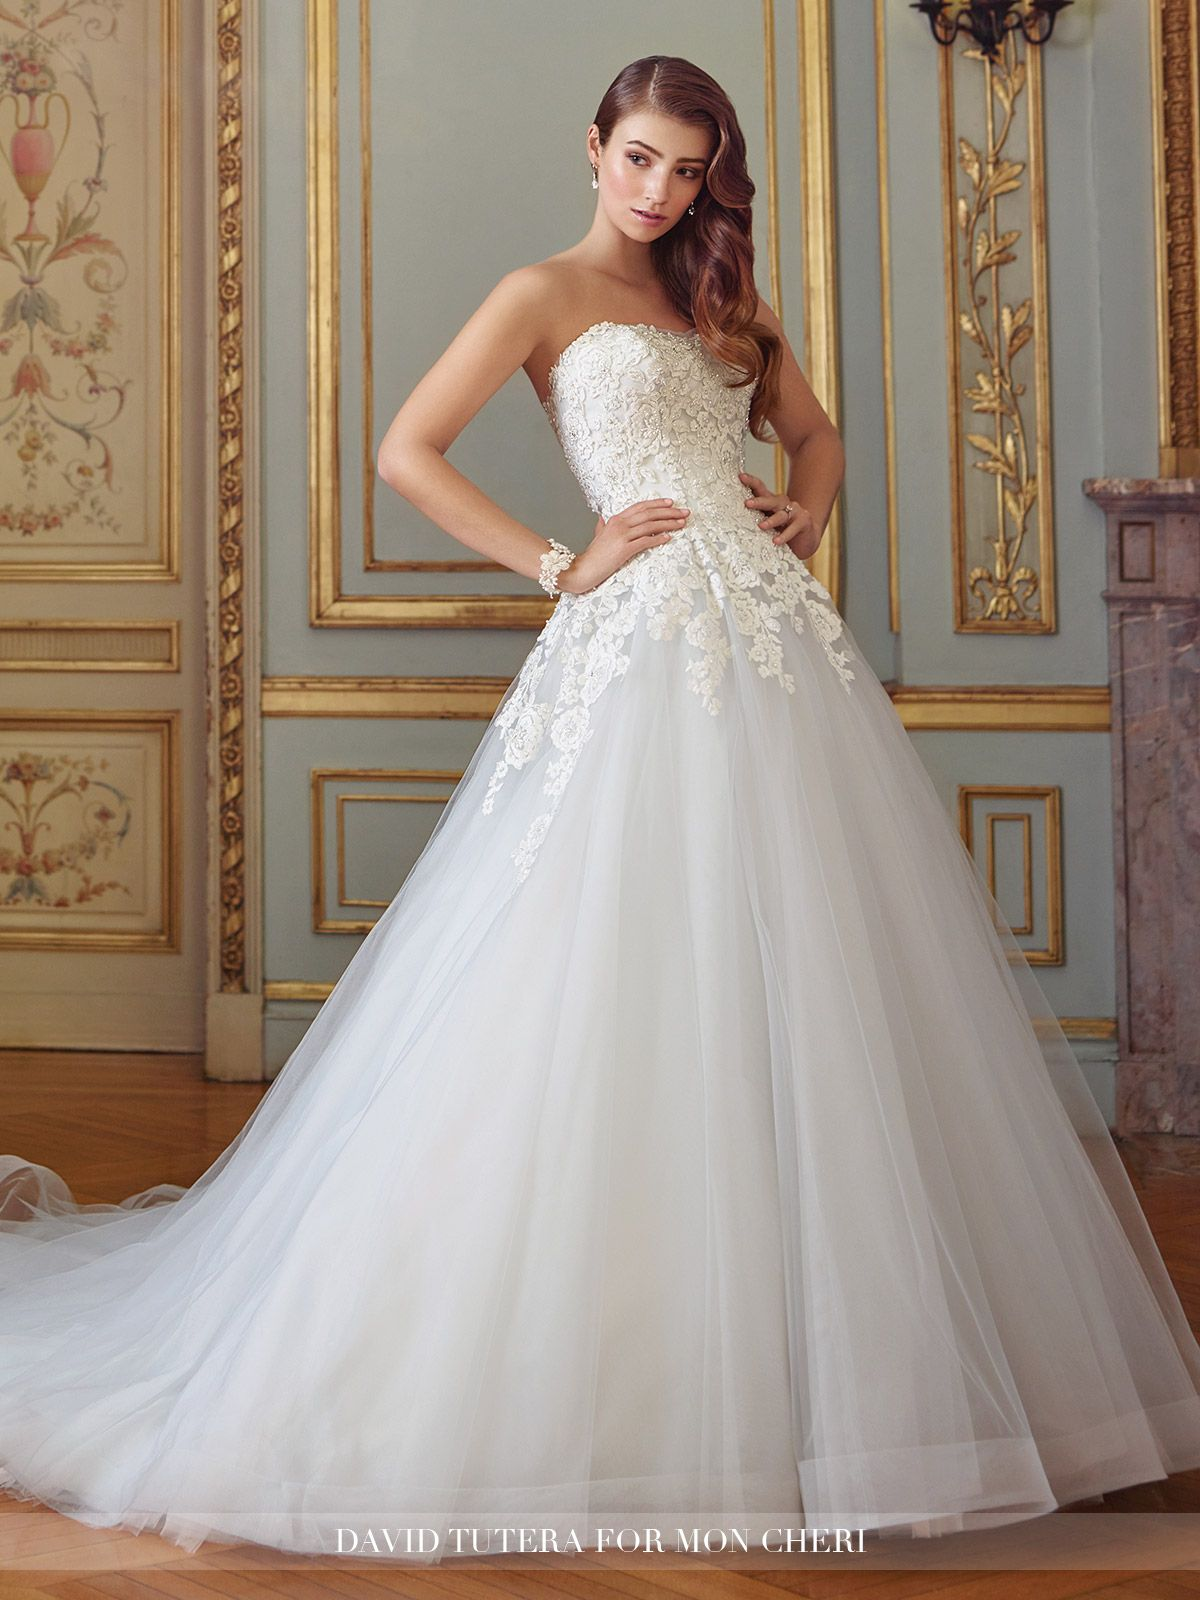 Dropped waist wedding dress  Strapless Chiffi Lace Ball Gown Wedding Dress  Sonia  Lace